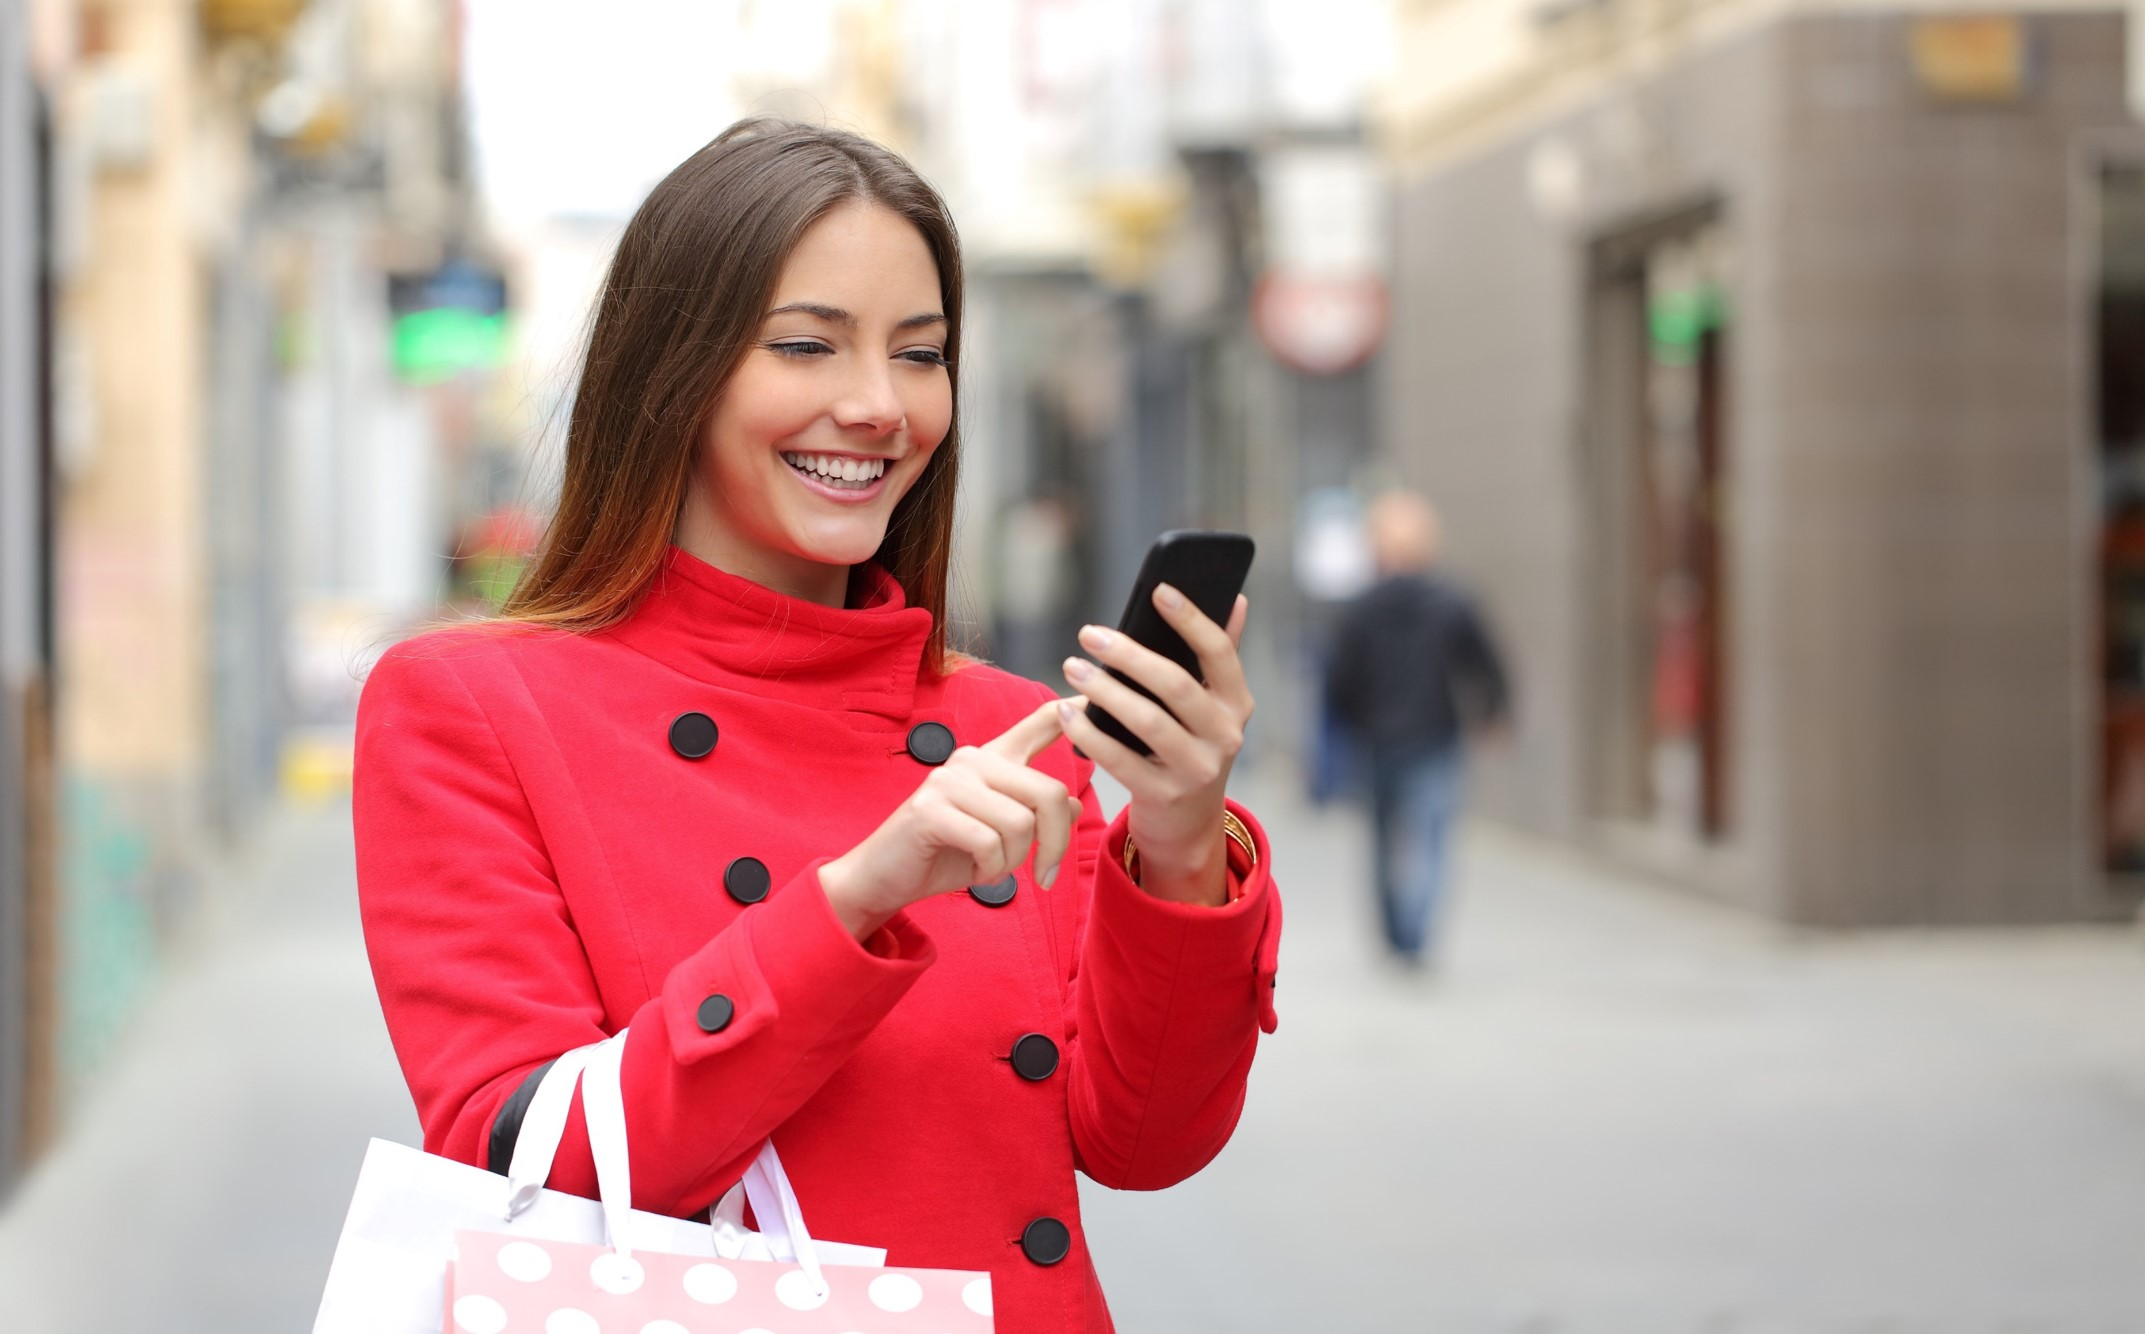 Text based Personal Shopper for 2021